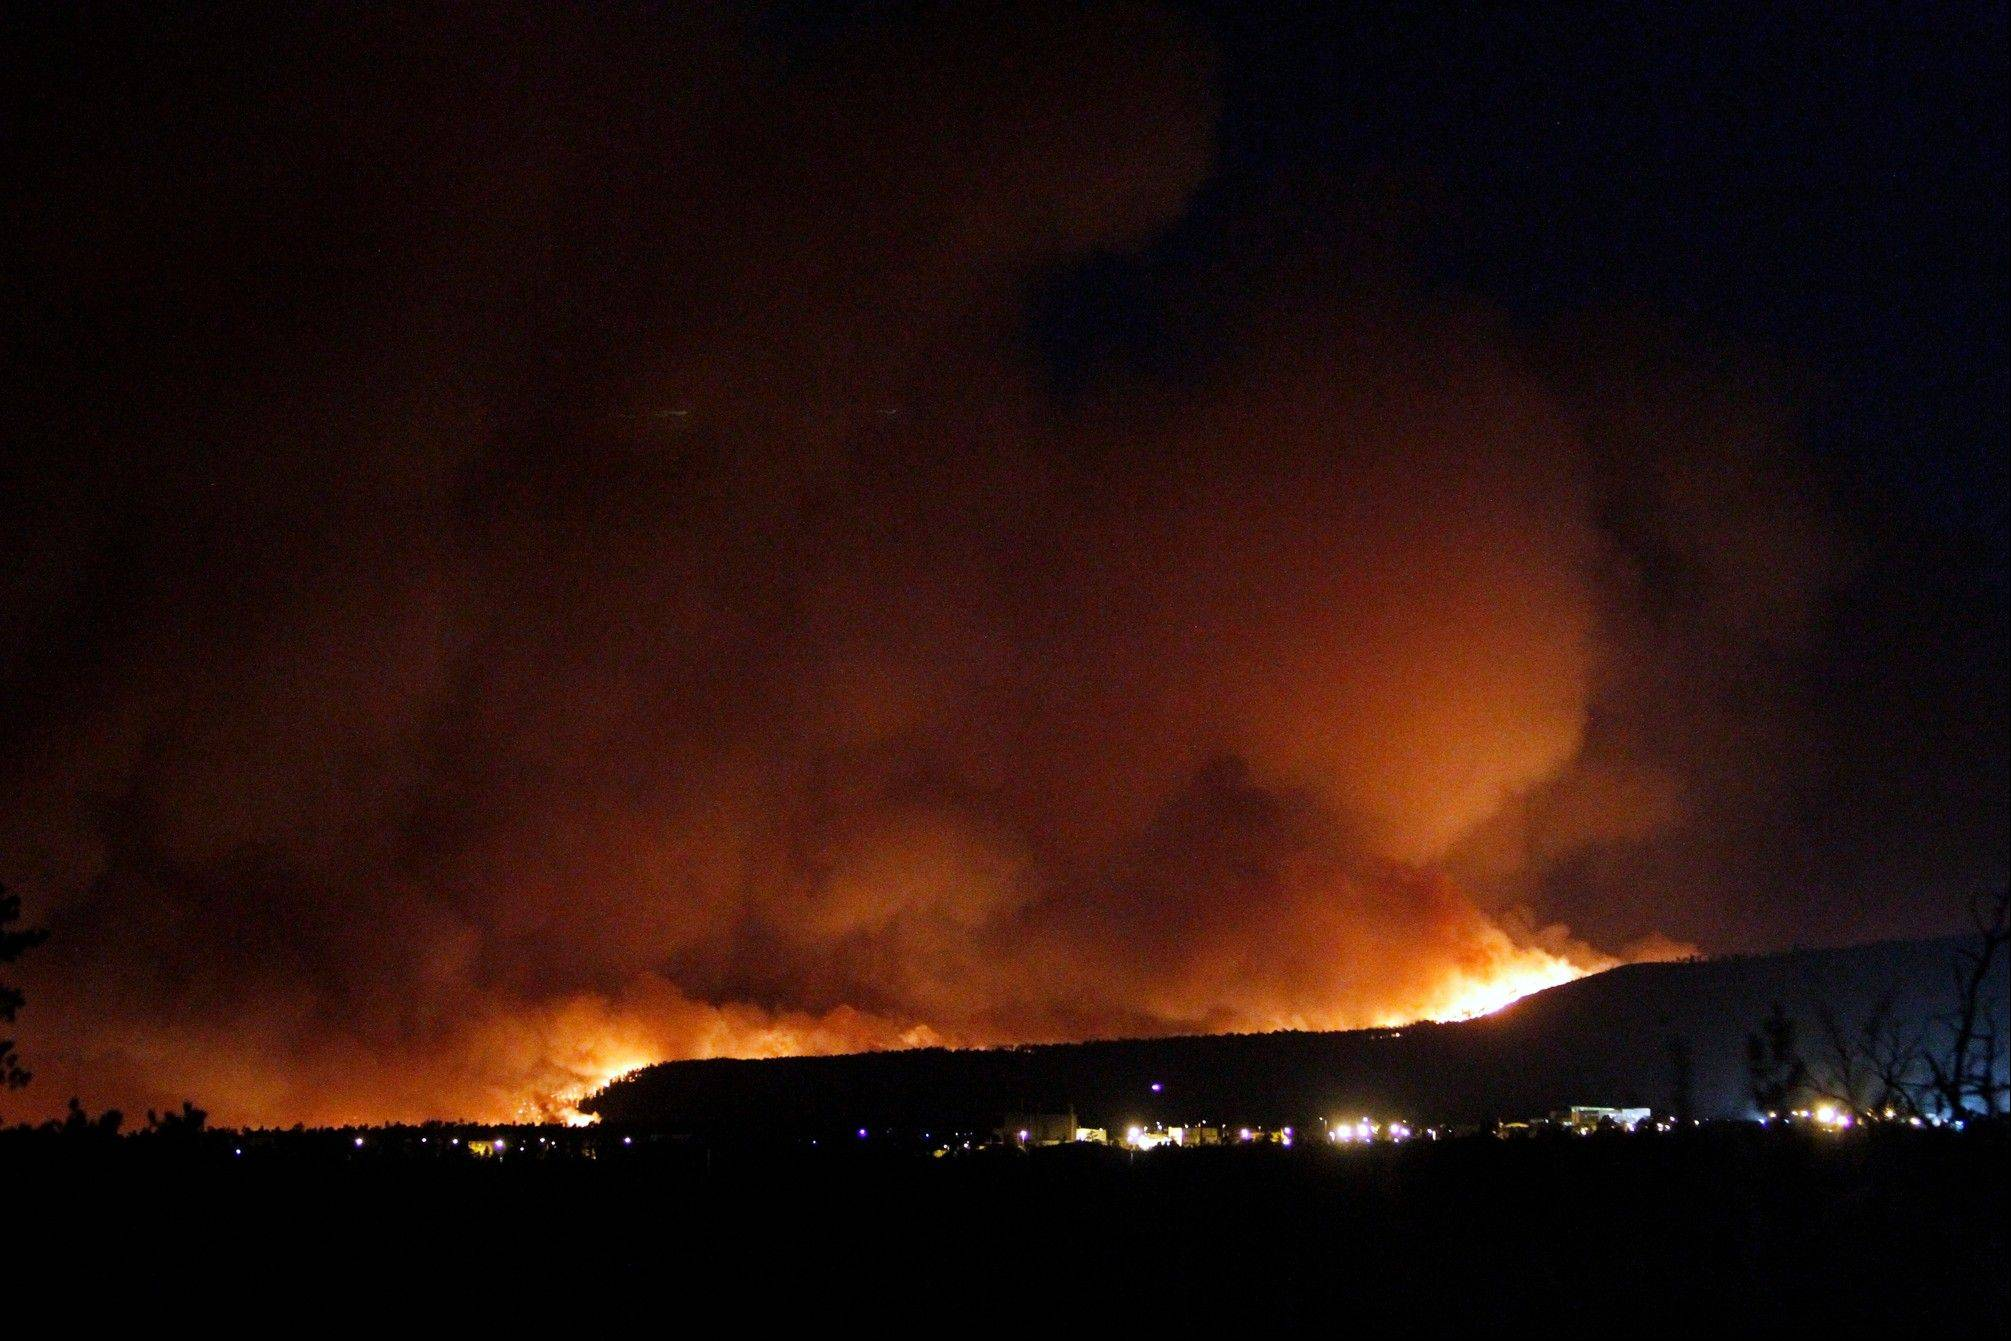 A wildfire crests over the hills above Los Alamos National Labs Sunday night. The fast-moving wildfire forced officials at the Los Alamos National Laboratory to close the site Monday.